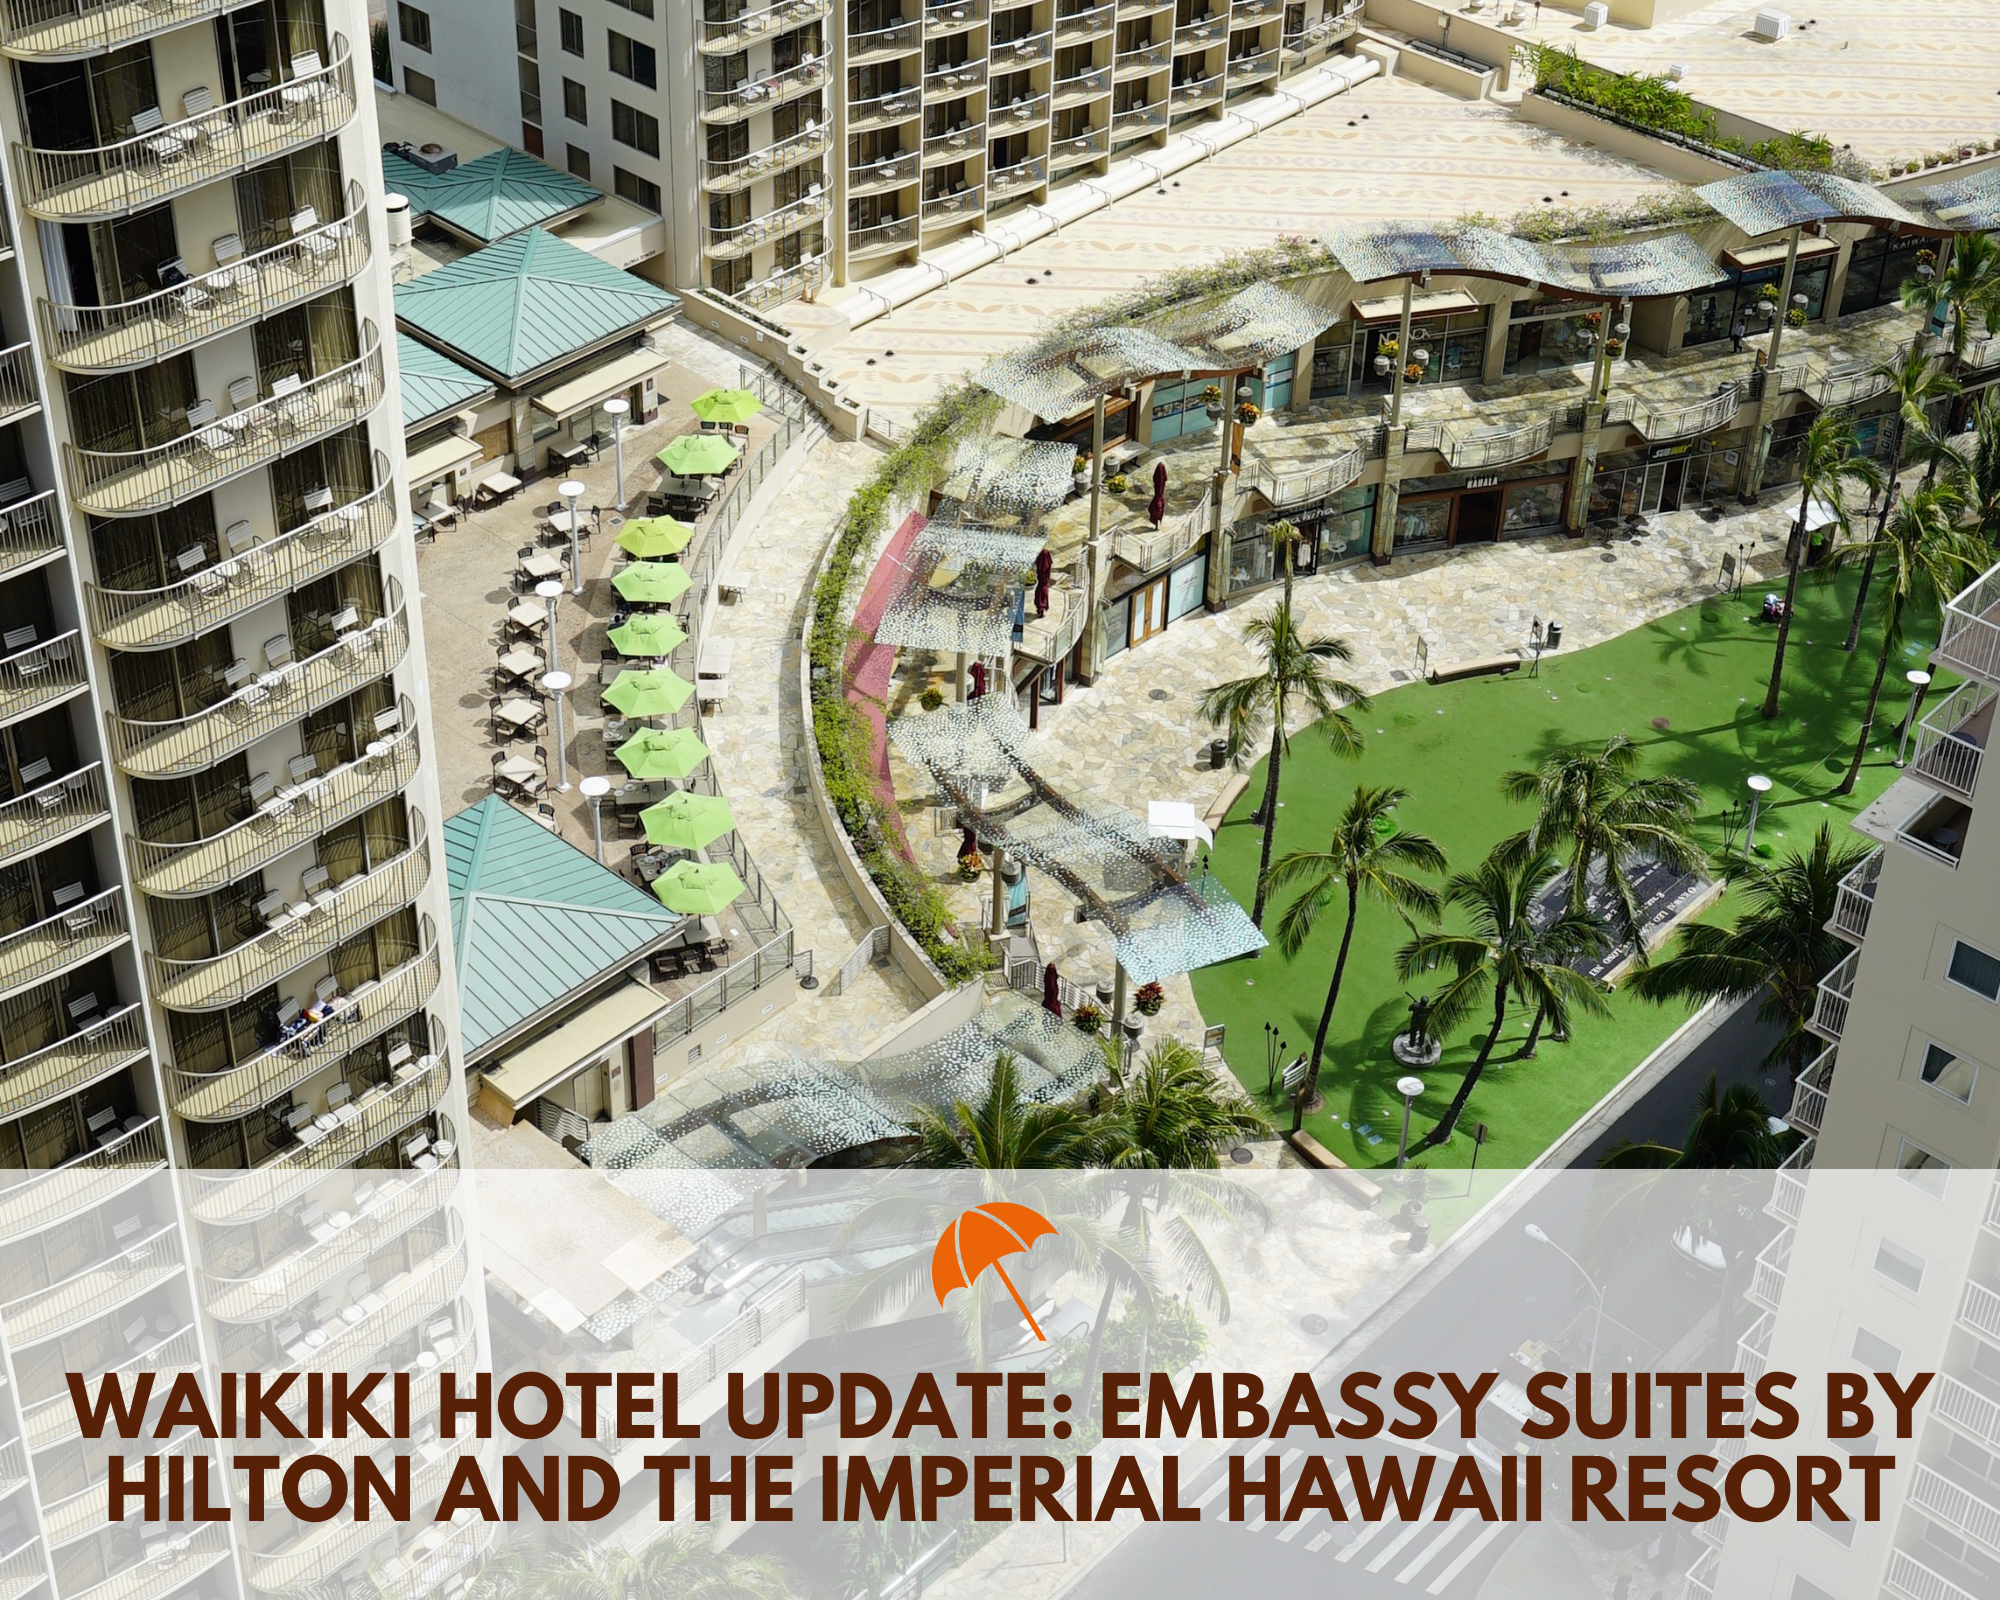 Waikiki Hotel Update: Embassy Suites by Hilton and The Imperial Hawaii Resort